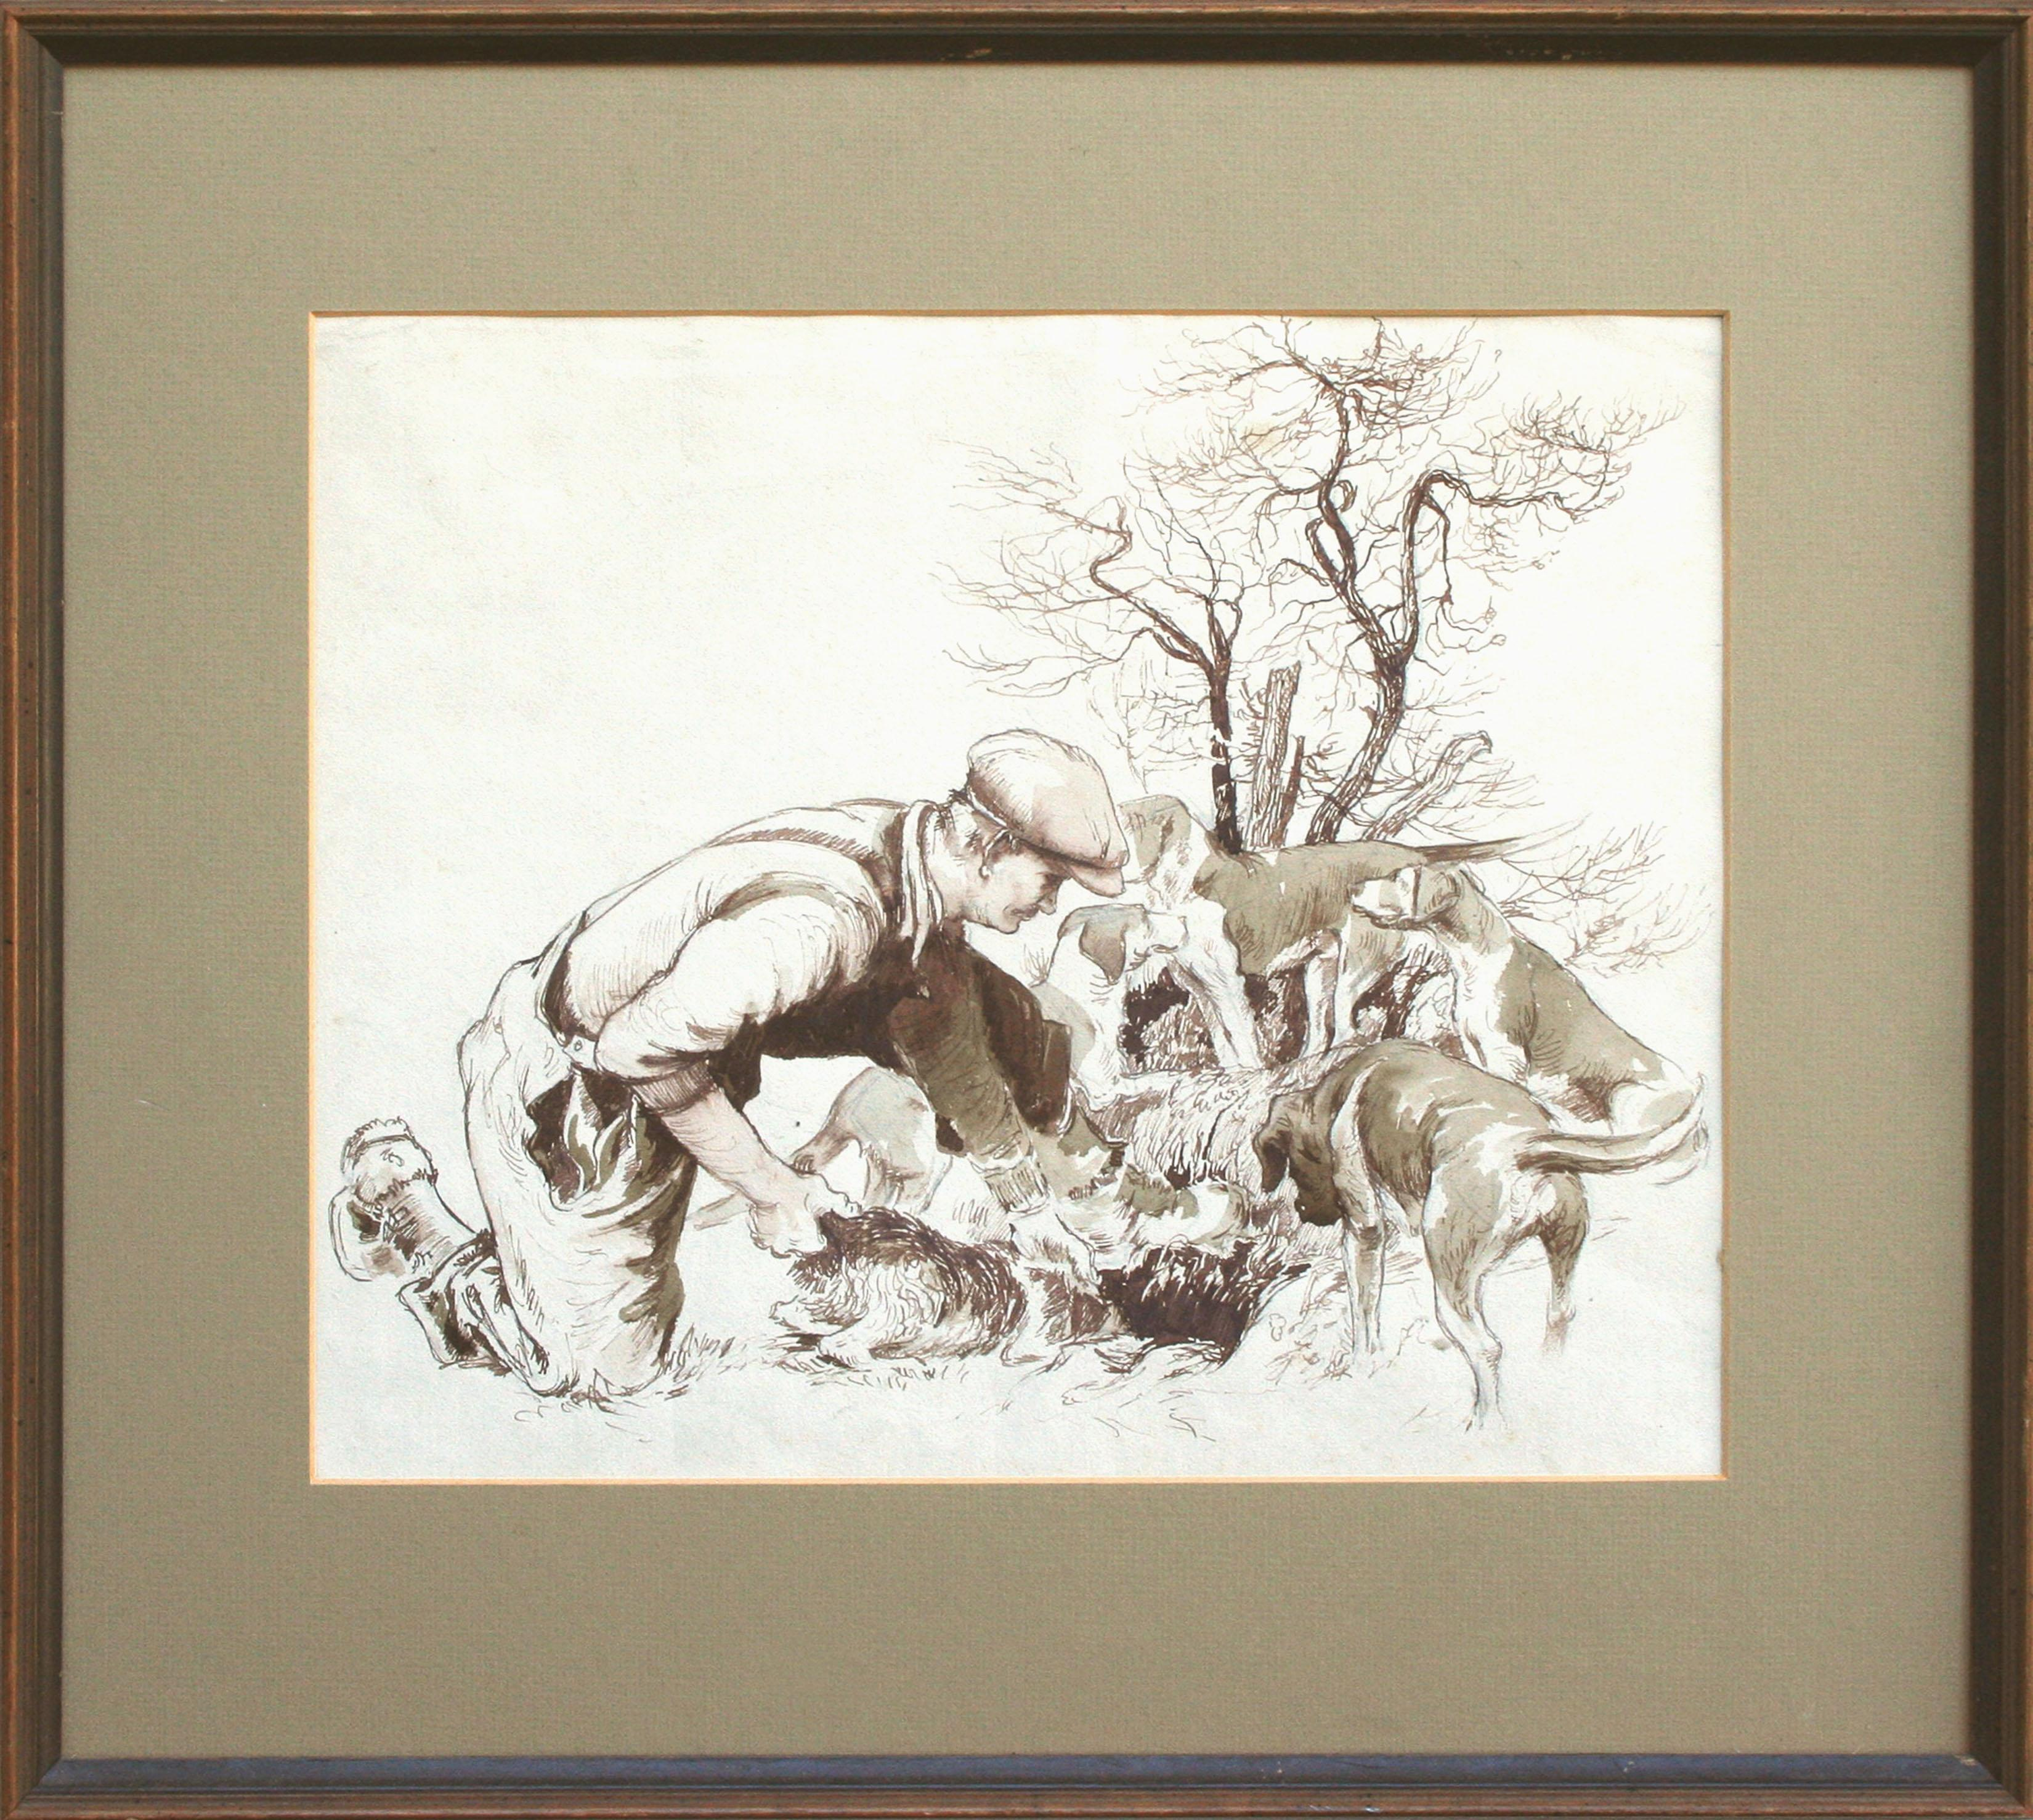 On  the Hunt - Figurative Drawing with Dogs